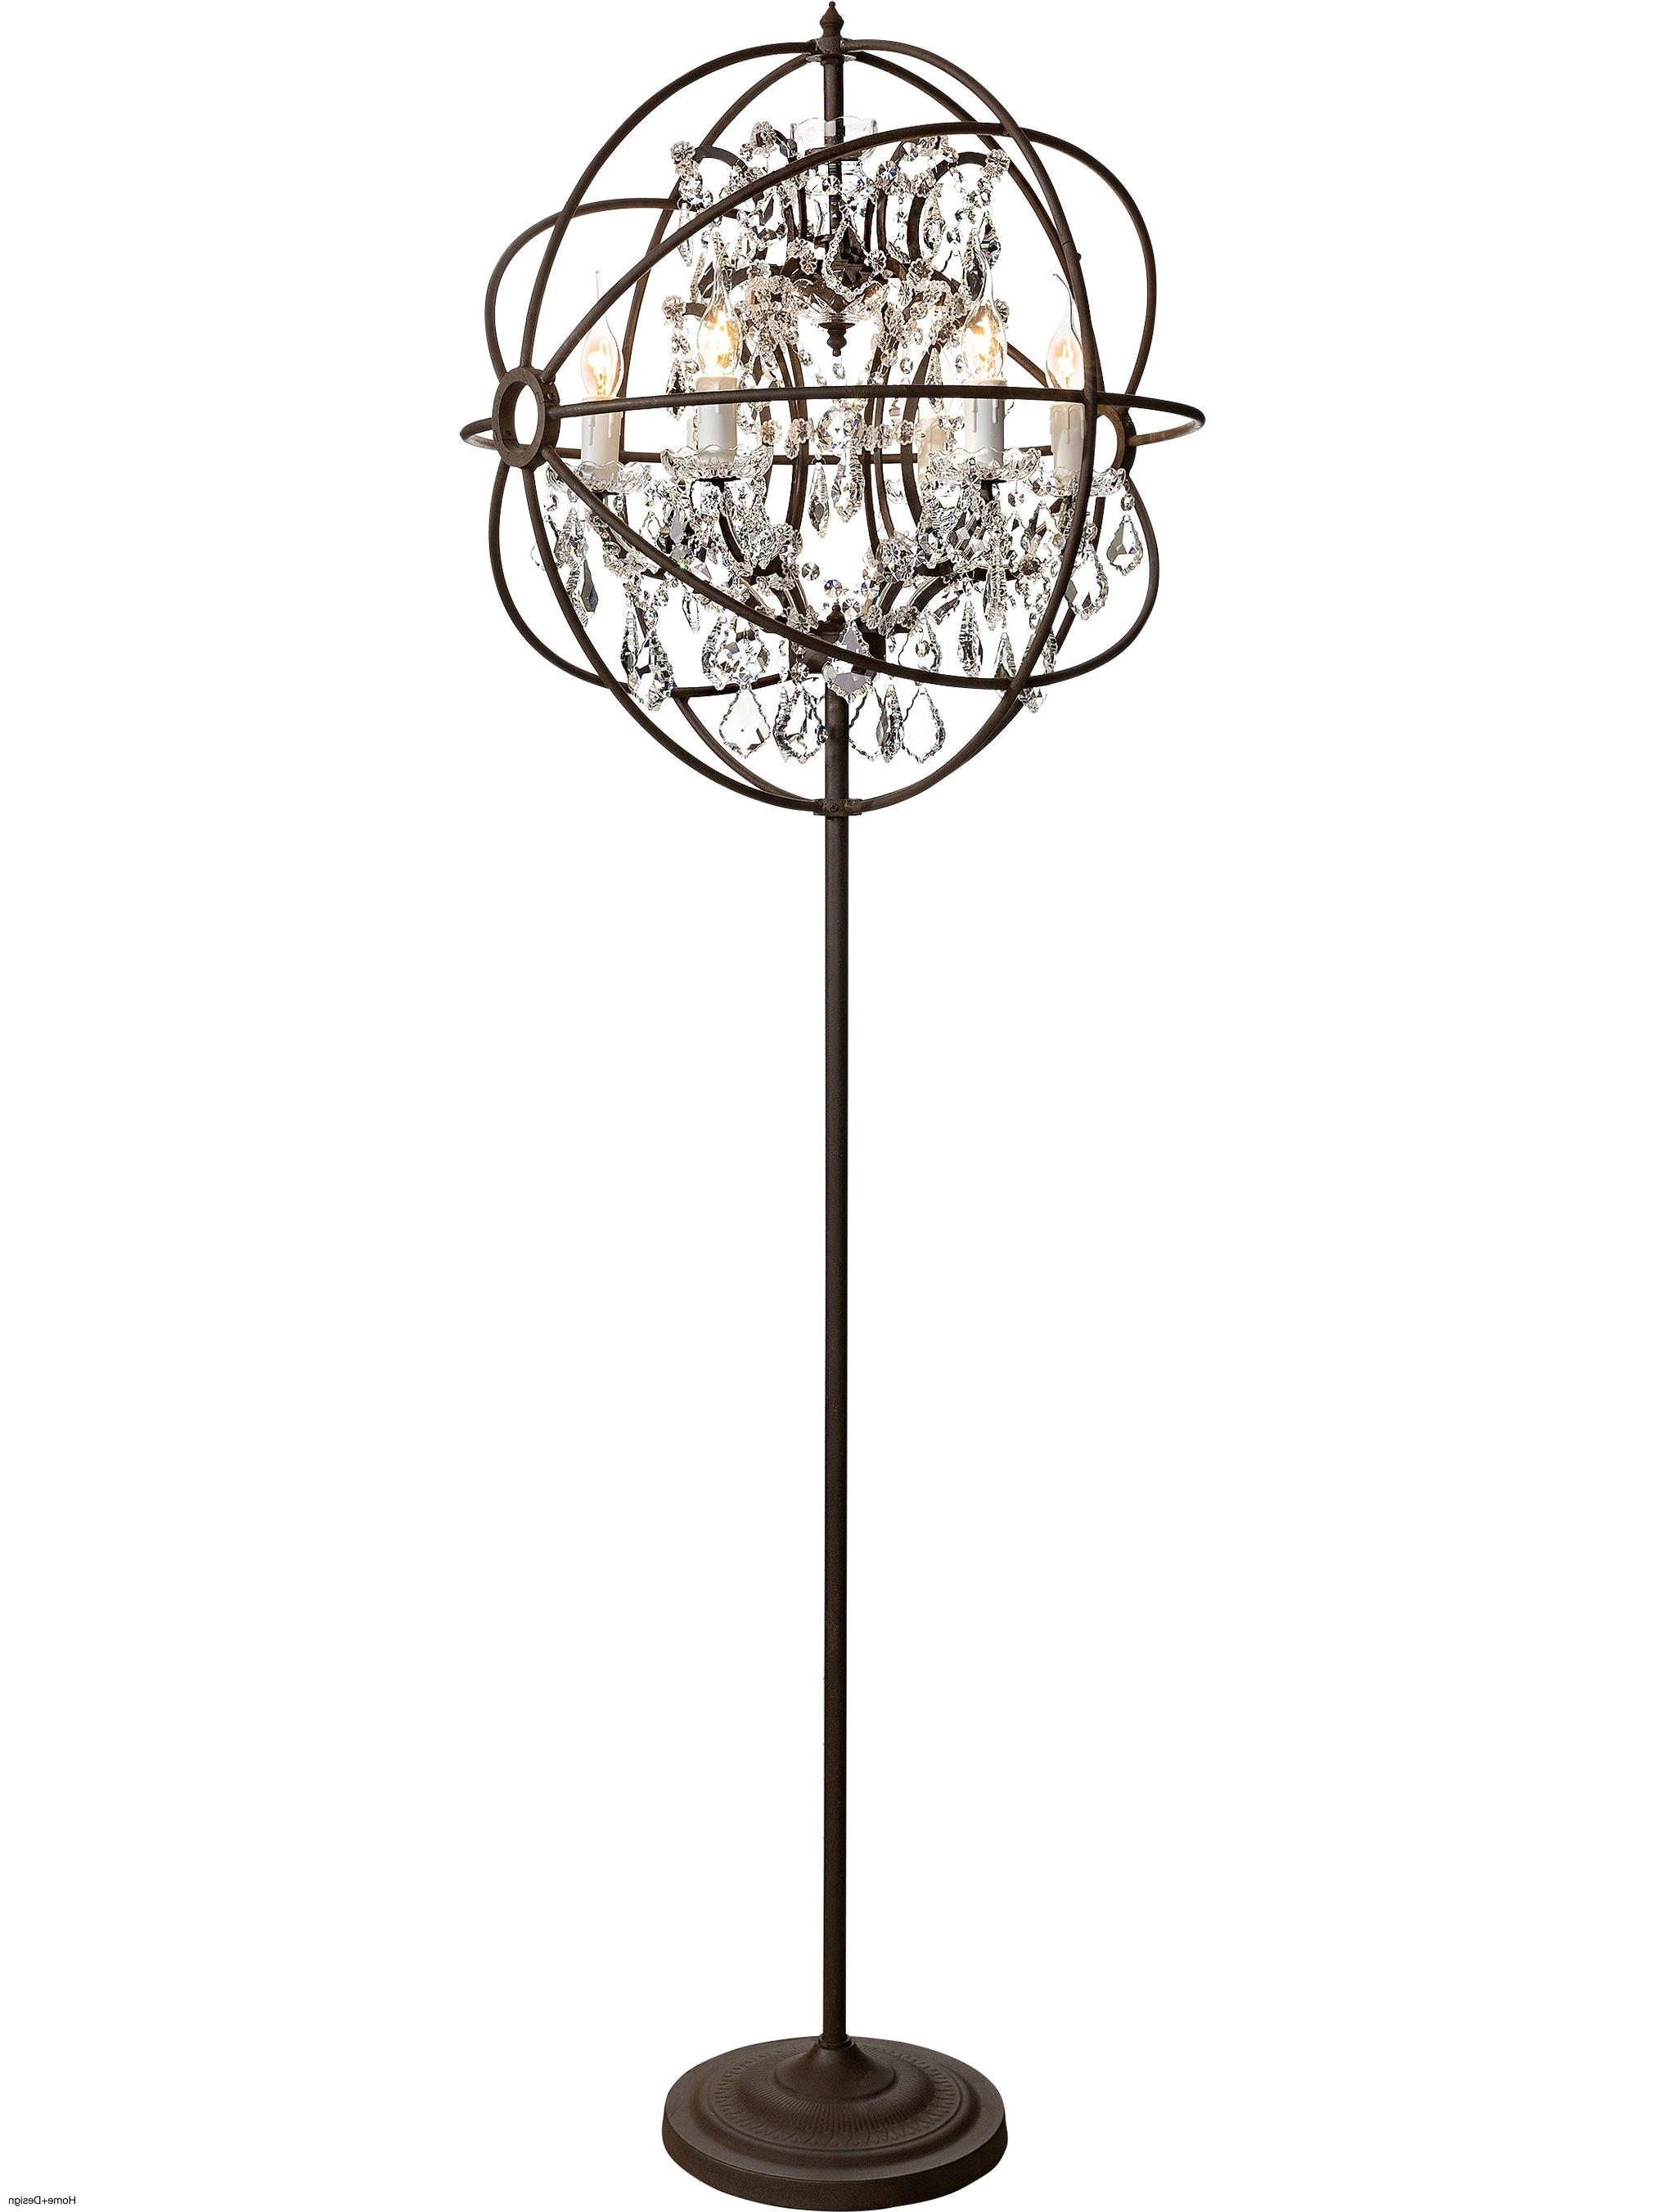 Standing Chandelier Floor Lamp – Chandelier Designs In Latest Free Standing Chandelier Lamps (View 17 of 20)